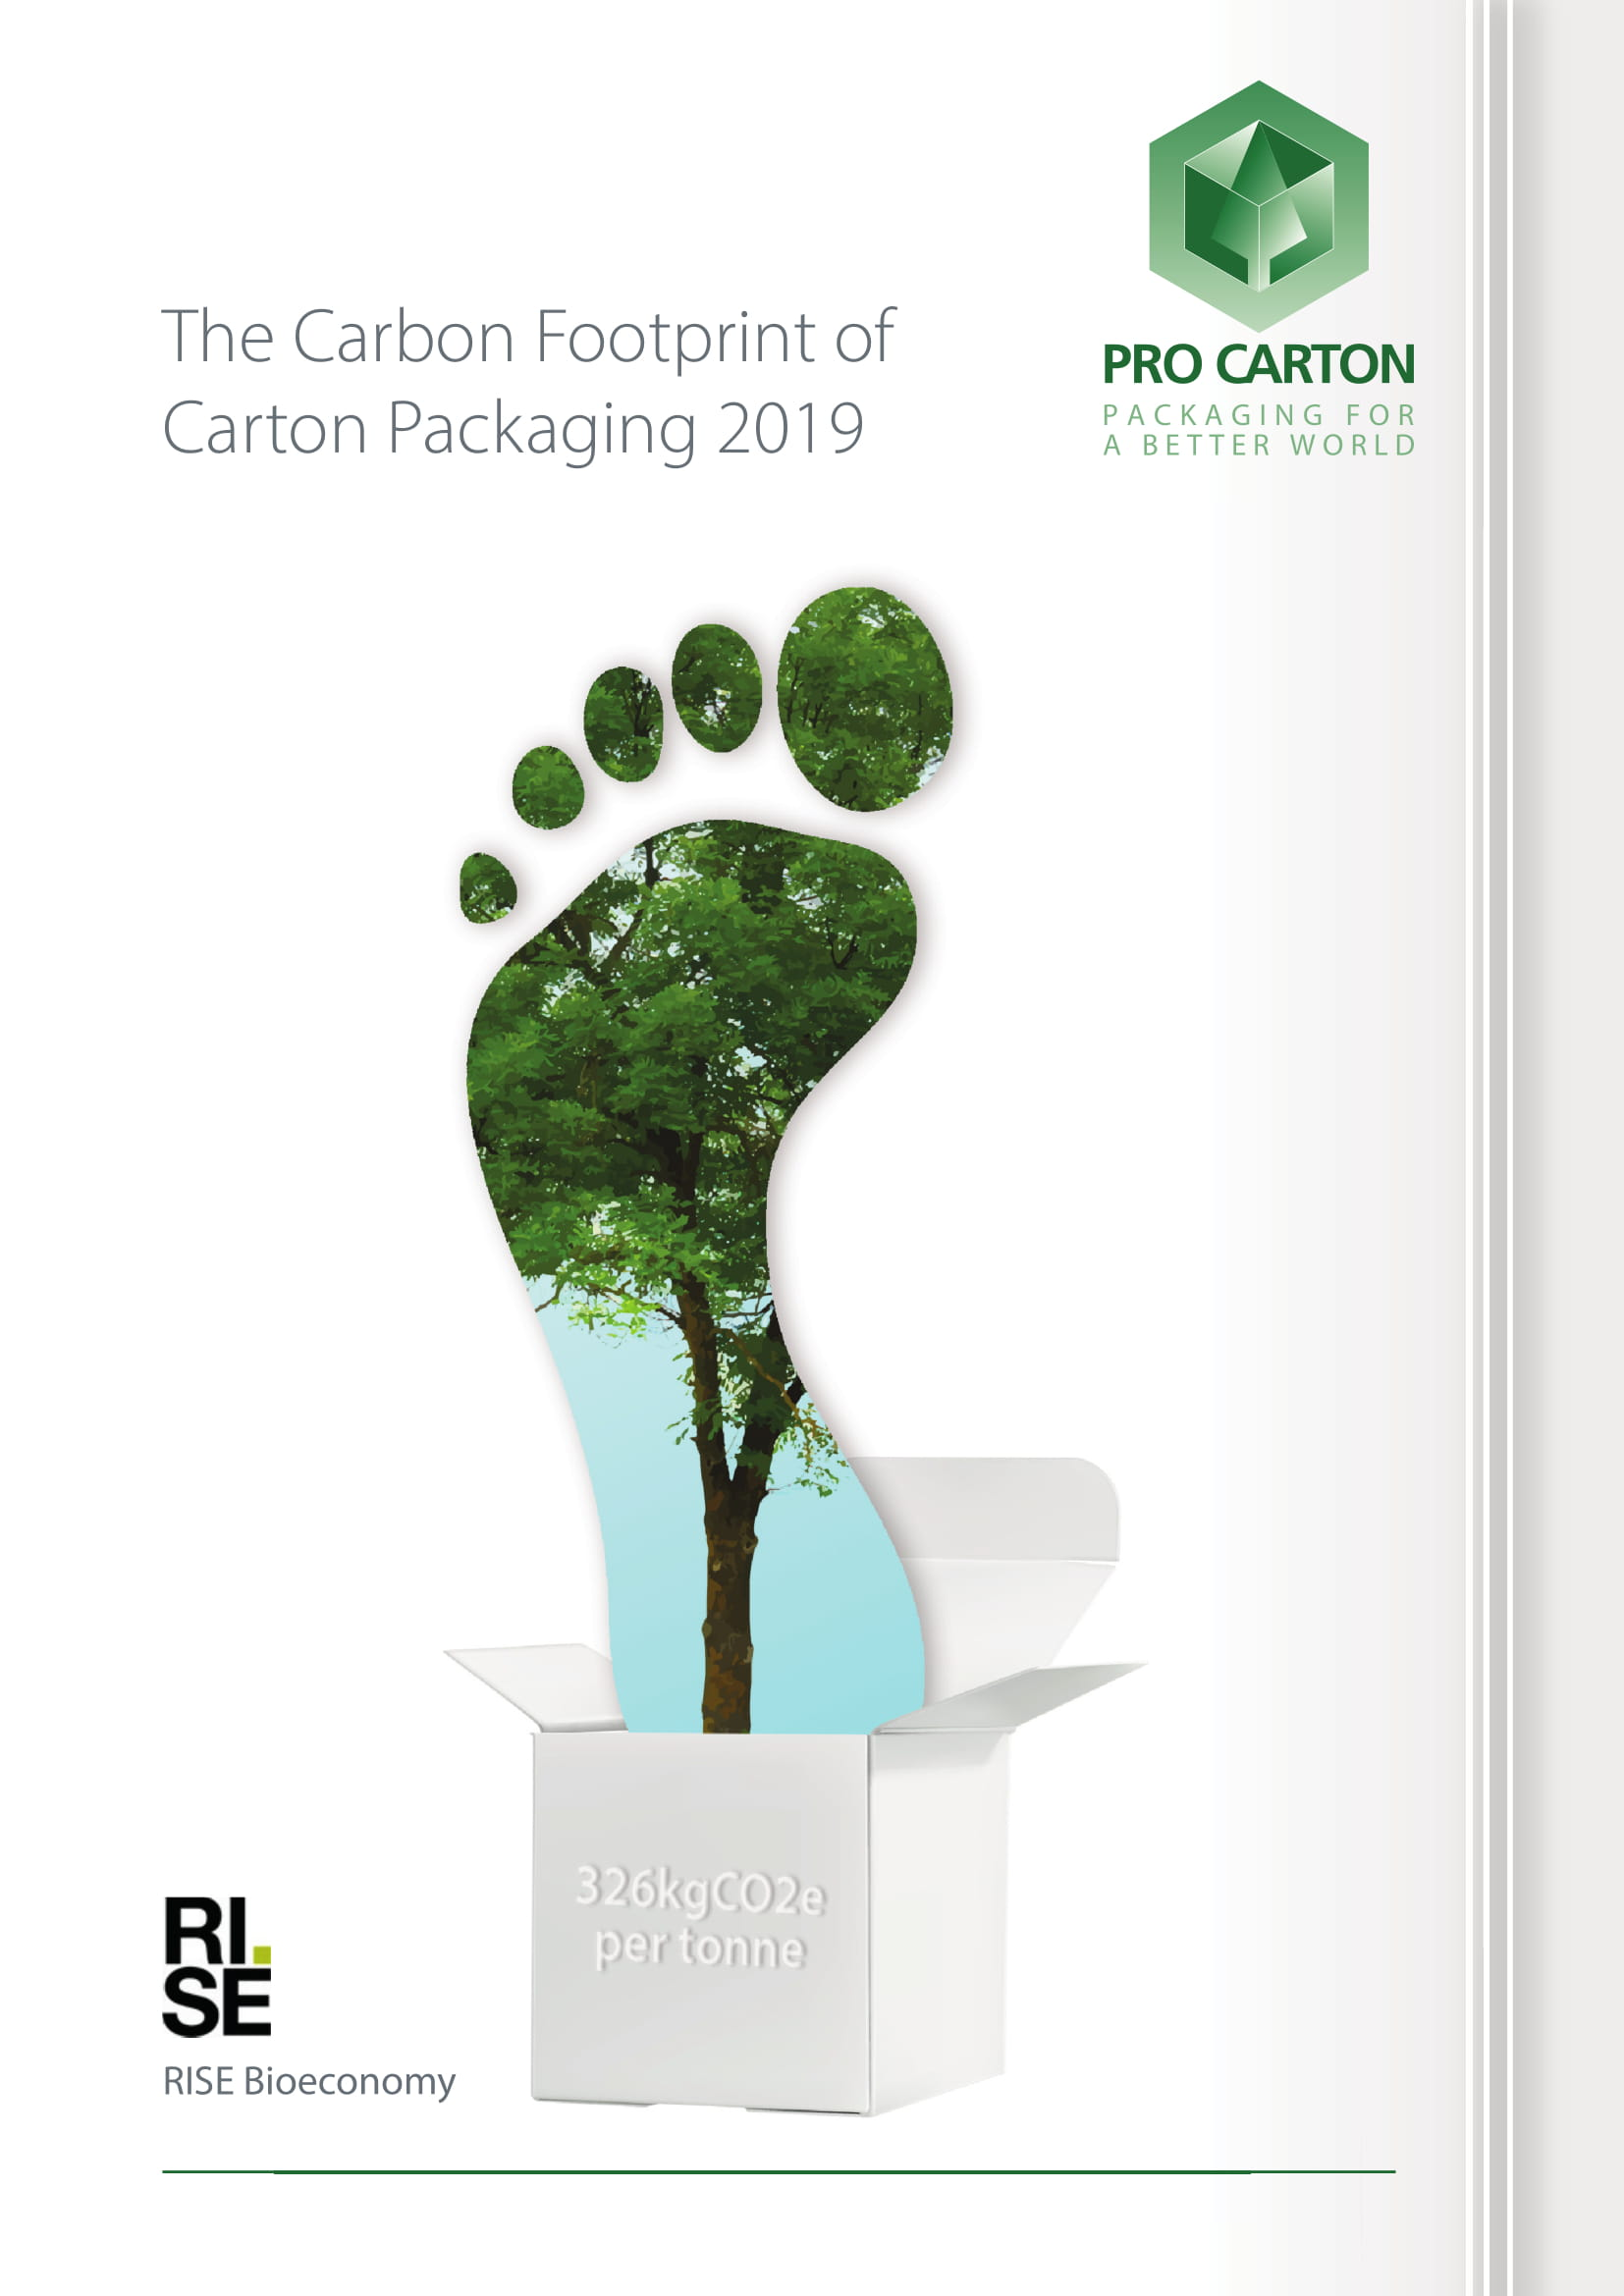 The Carbon Footprint of Carton Packaging 2019 Executive Summary